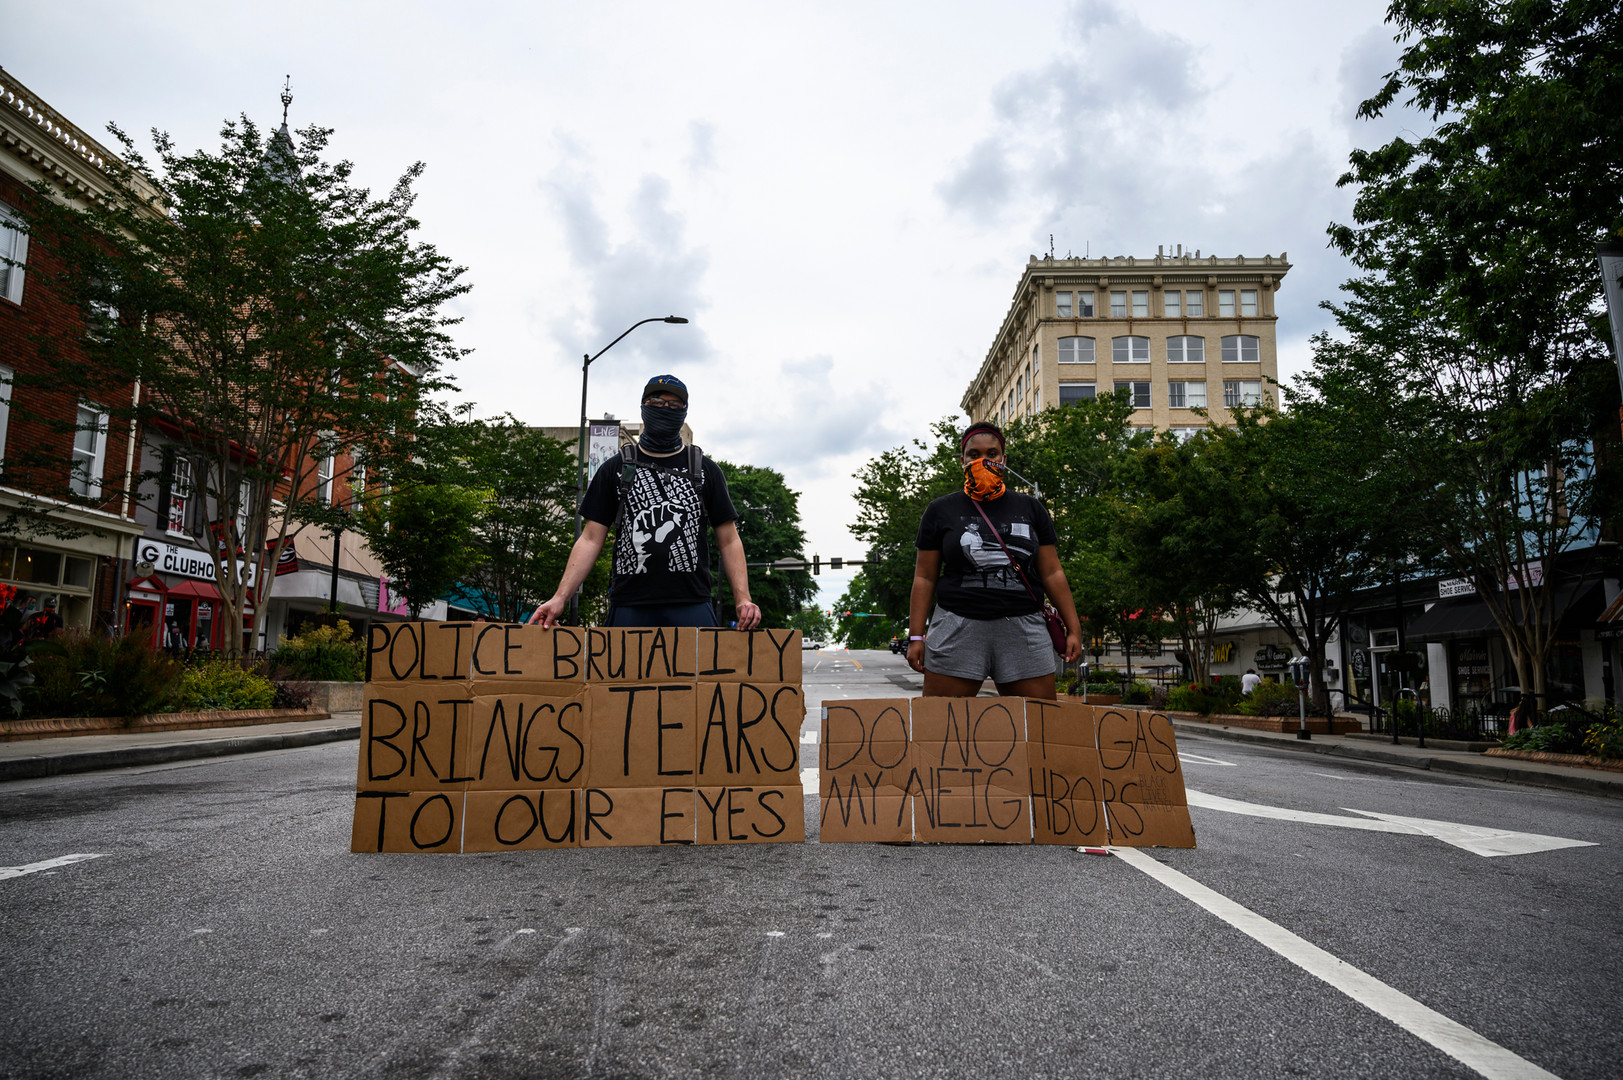 Protesters hold signs, kneel every hour and listen to music on Saturday, June 6, 2020 in Athens, Georgia. These protesters chose to stay downtown after a rally organized by the Athens Anti-Discrimination Movement ended. This marks the seventh consecutive day of protests in Athens that join with  protests worldwide that call for racial justice and an end to police violence against minorities. The National Guard, GBI officers and Athens-Clarke County police were all on scene or staged nearby.